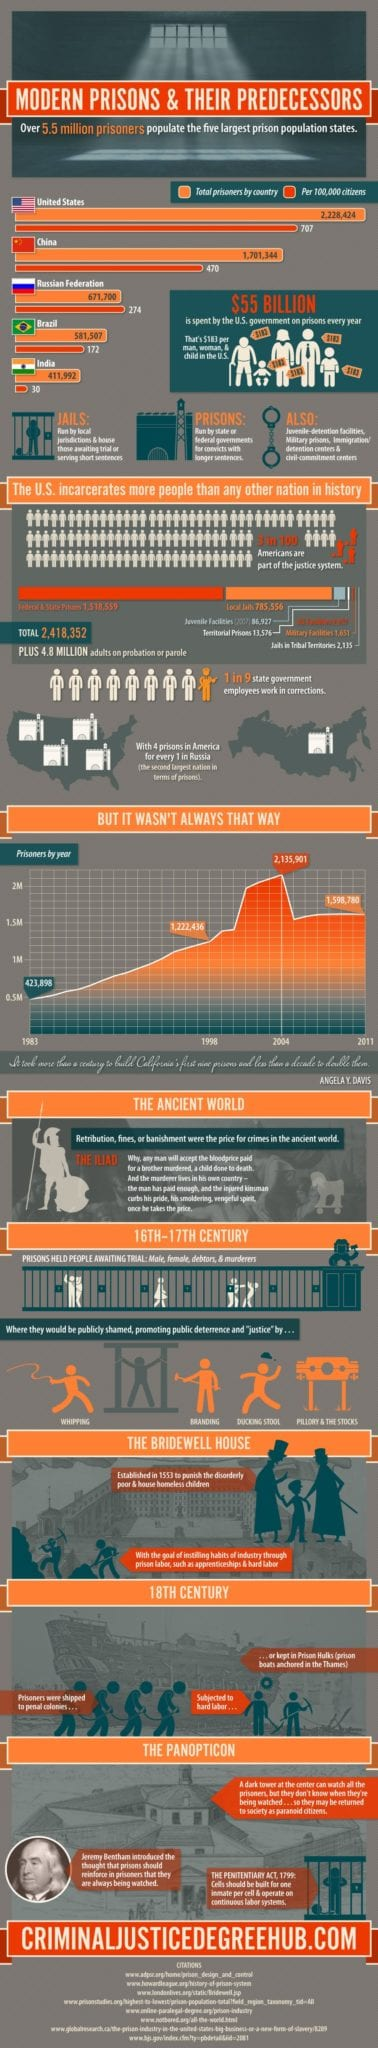 History-of-Prisons